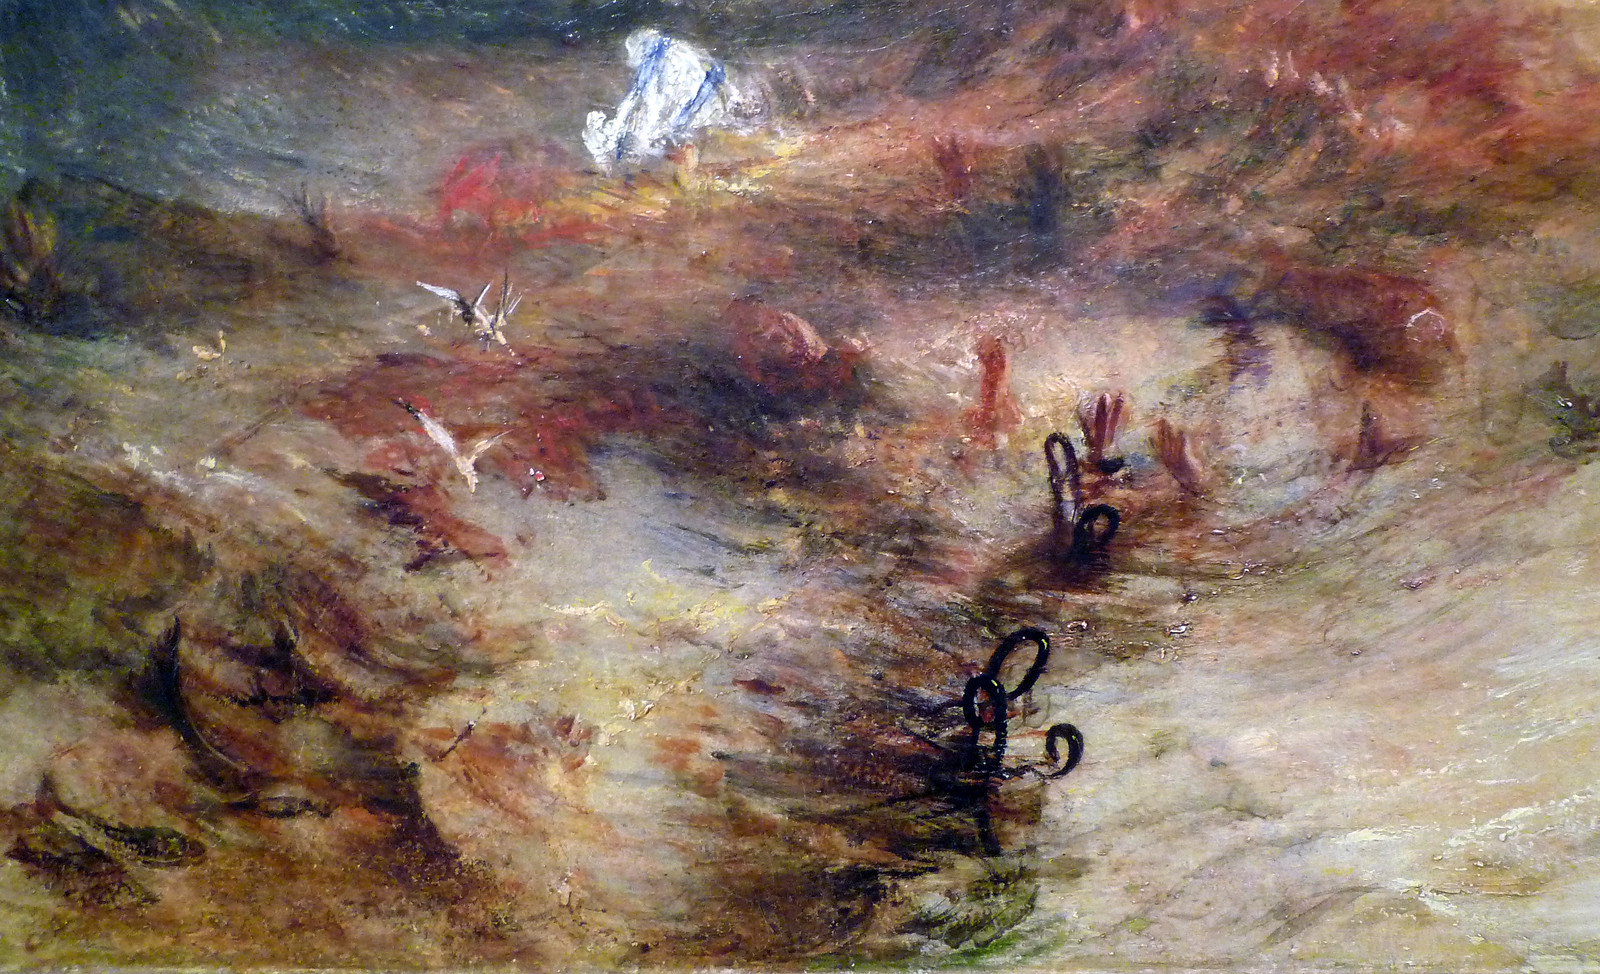 JMW Turner, Slave Ship, detail with chains | by profzucker